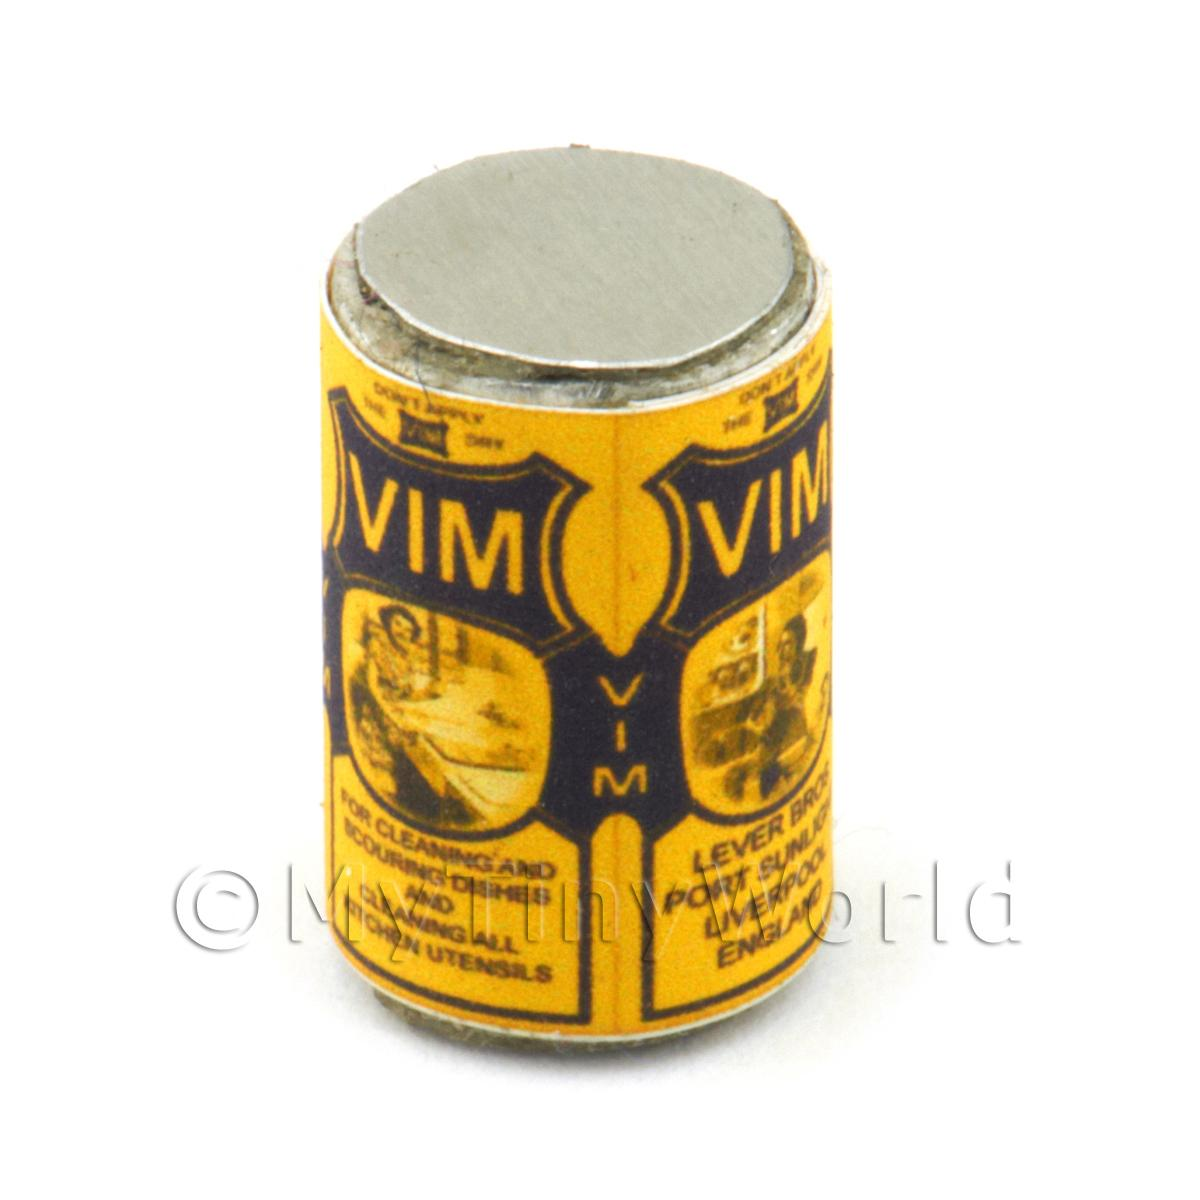 Dolls House Miniature Vim Cleaning Powder Can (1910s)